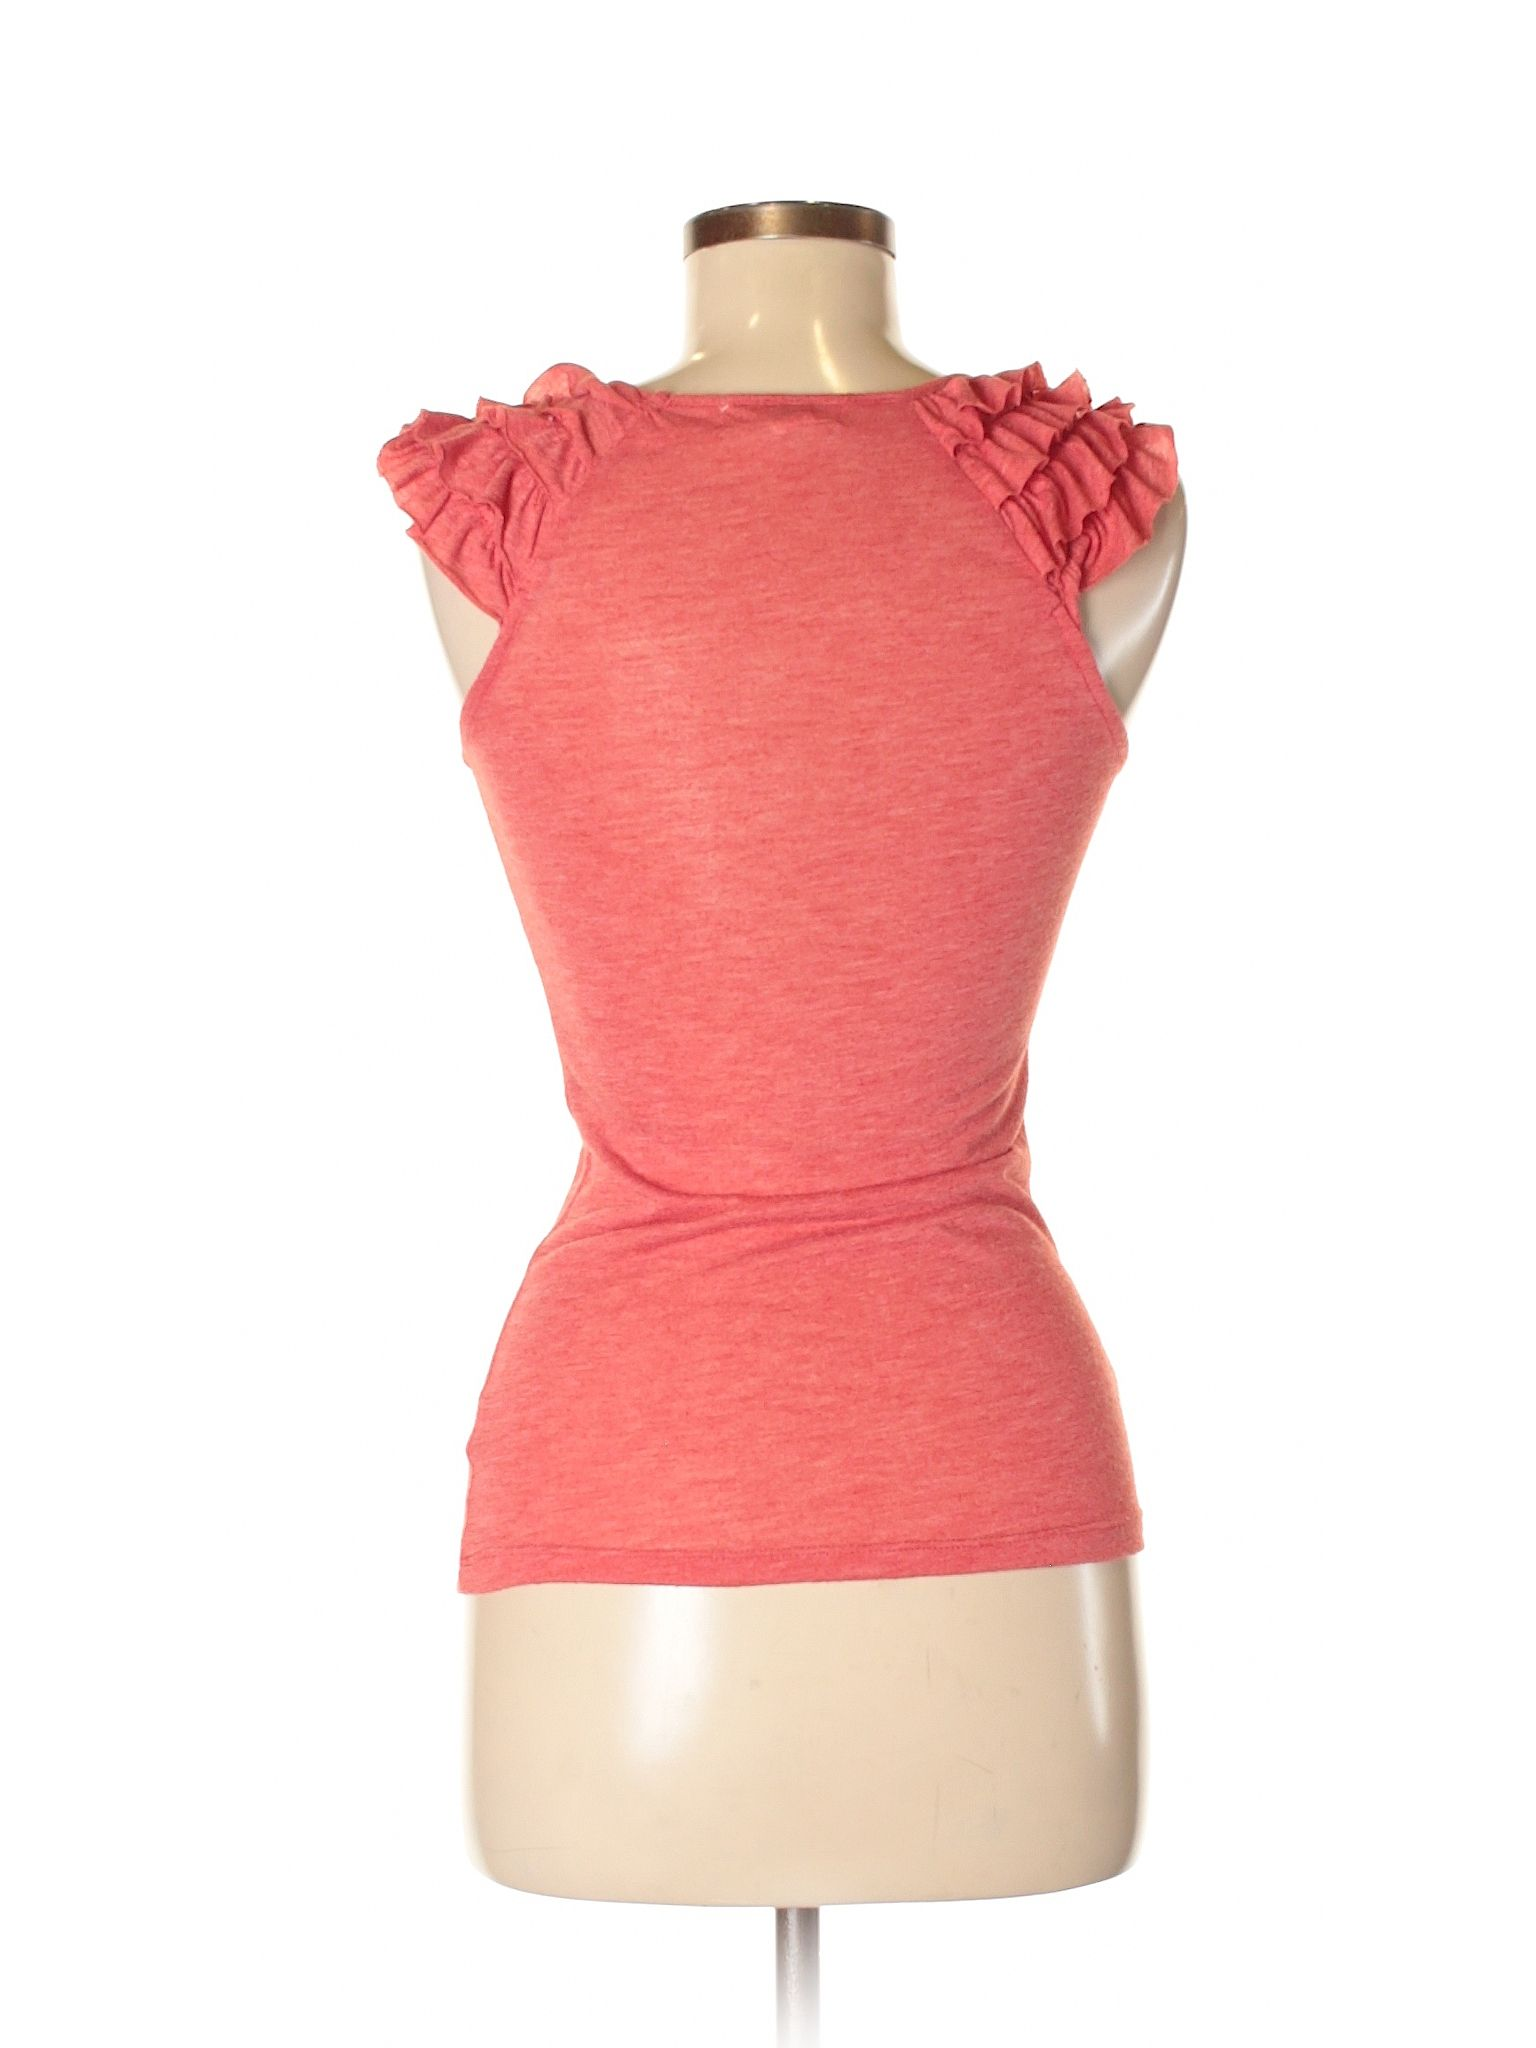 Forever 21 Short Sleeve Top Size 400 Coral Womens Tops